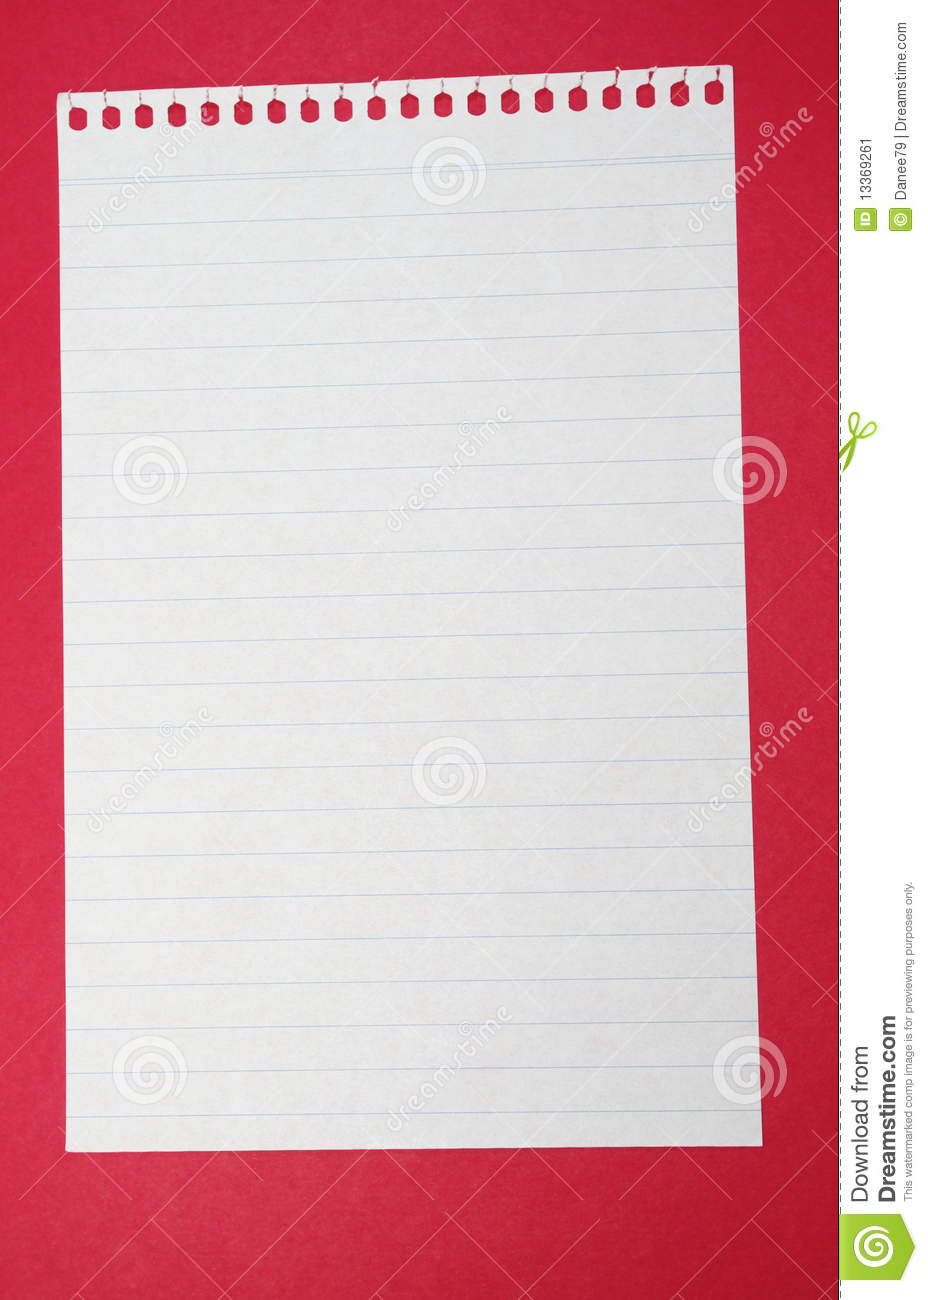 Download Lined paper stock image. Image of writing, wrote, letter - 13369261